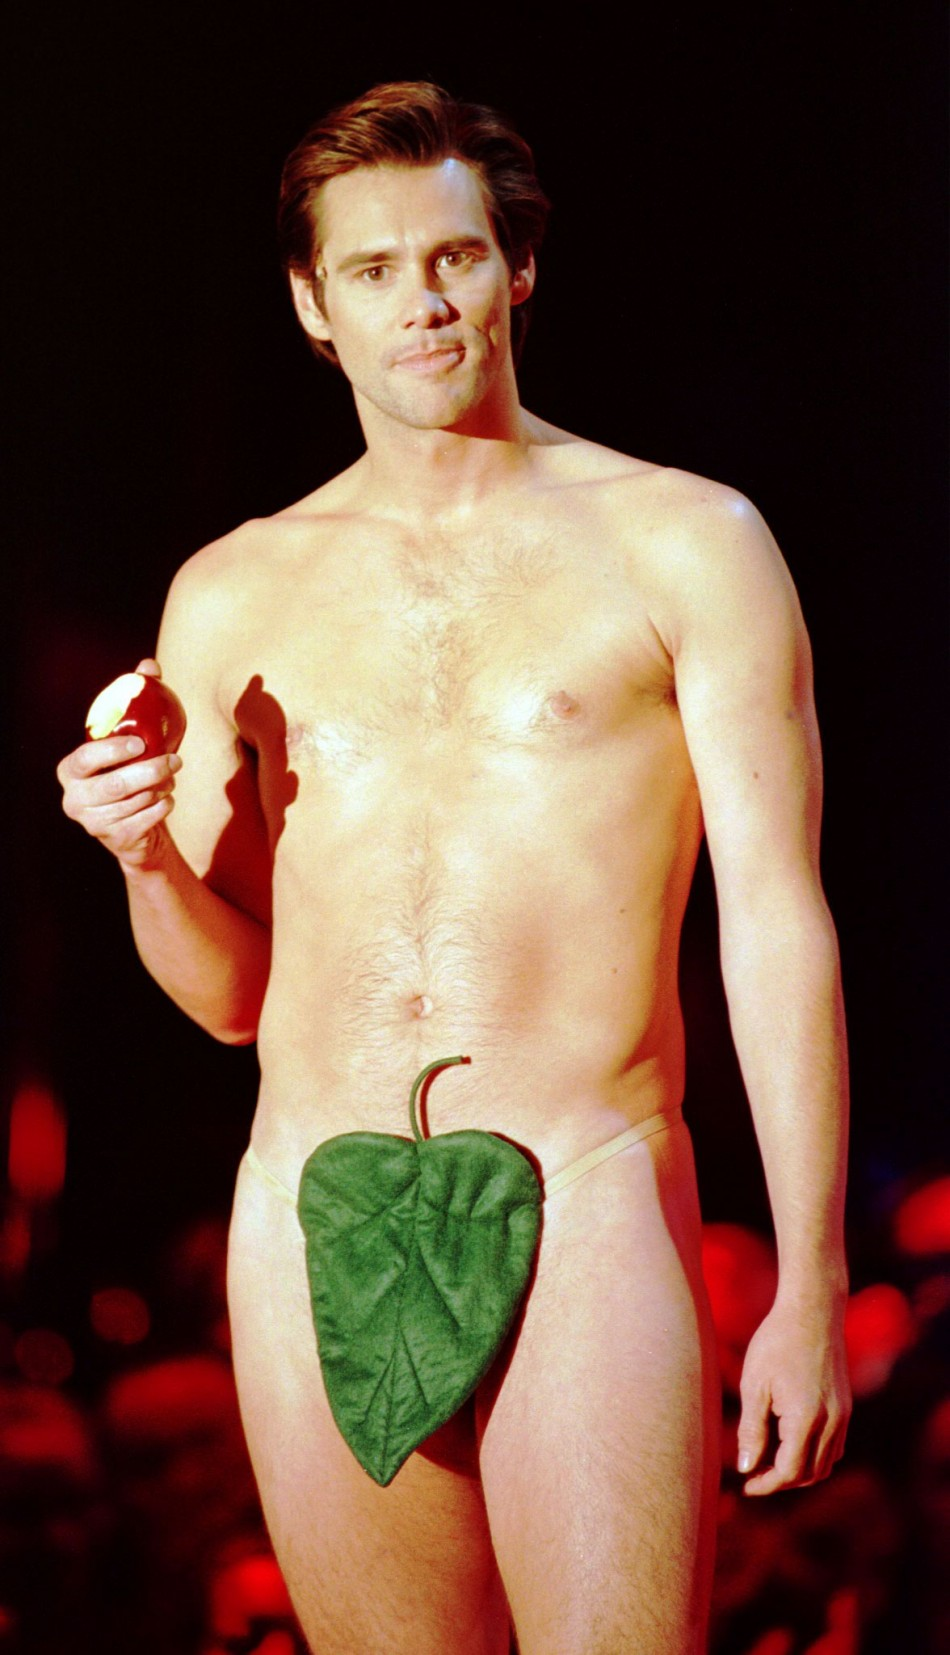 Jim Carrey wore a fig leaf to introduce The Rolling Stones at the VH1 Fashion Awards in New York City in 1997